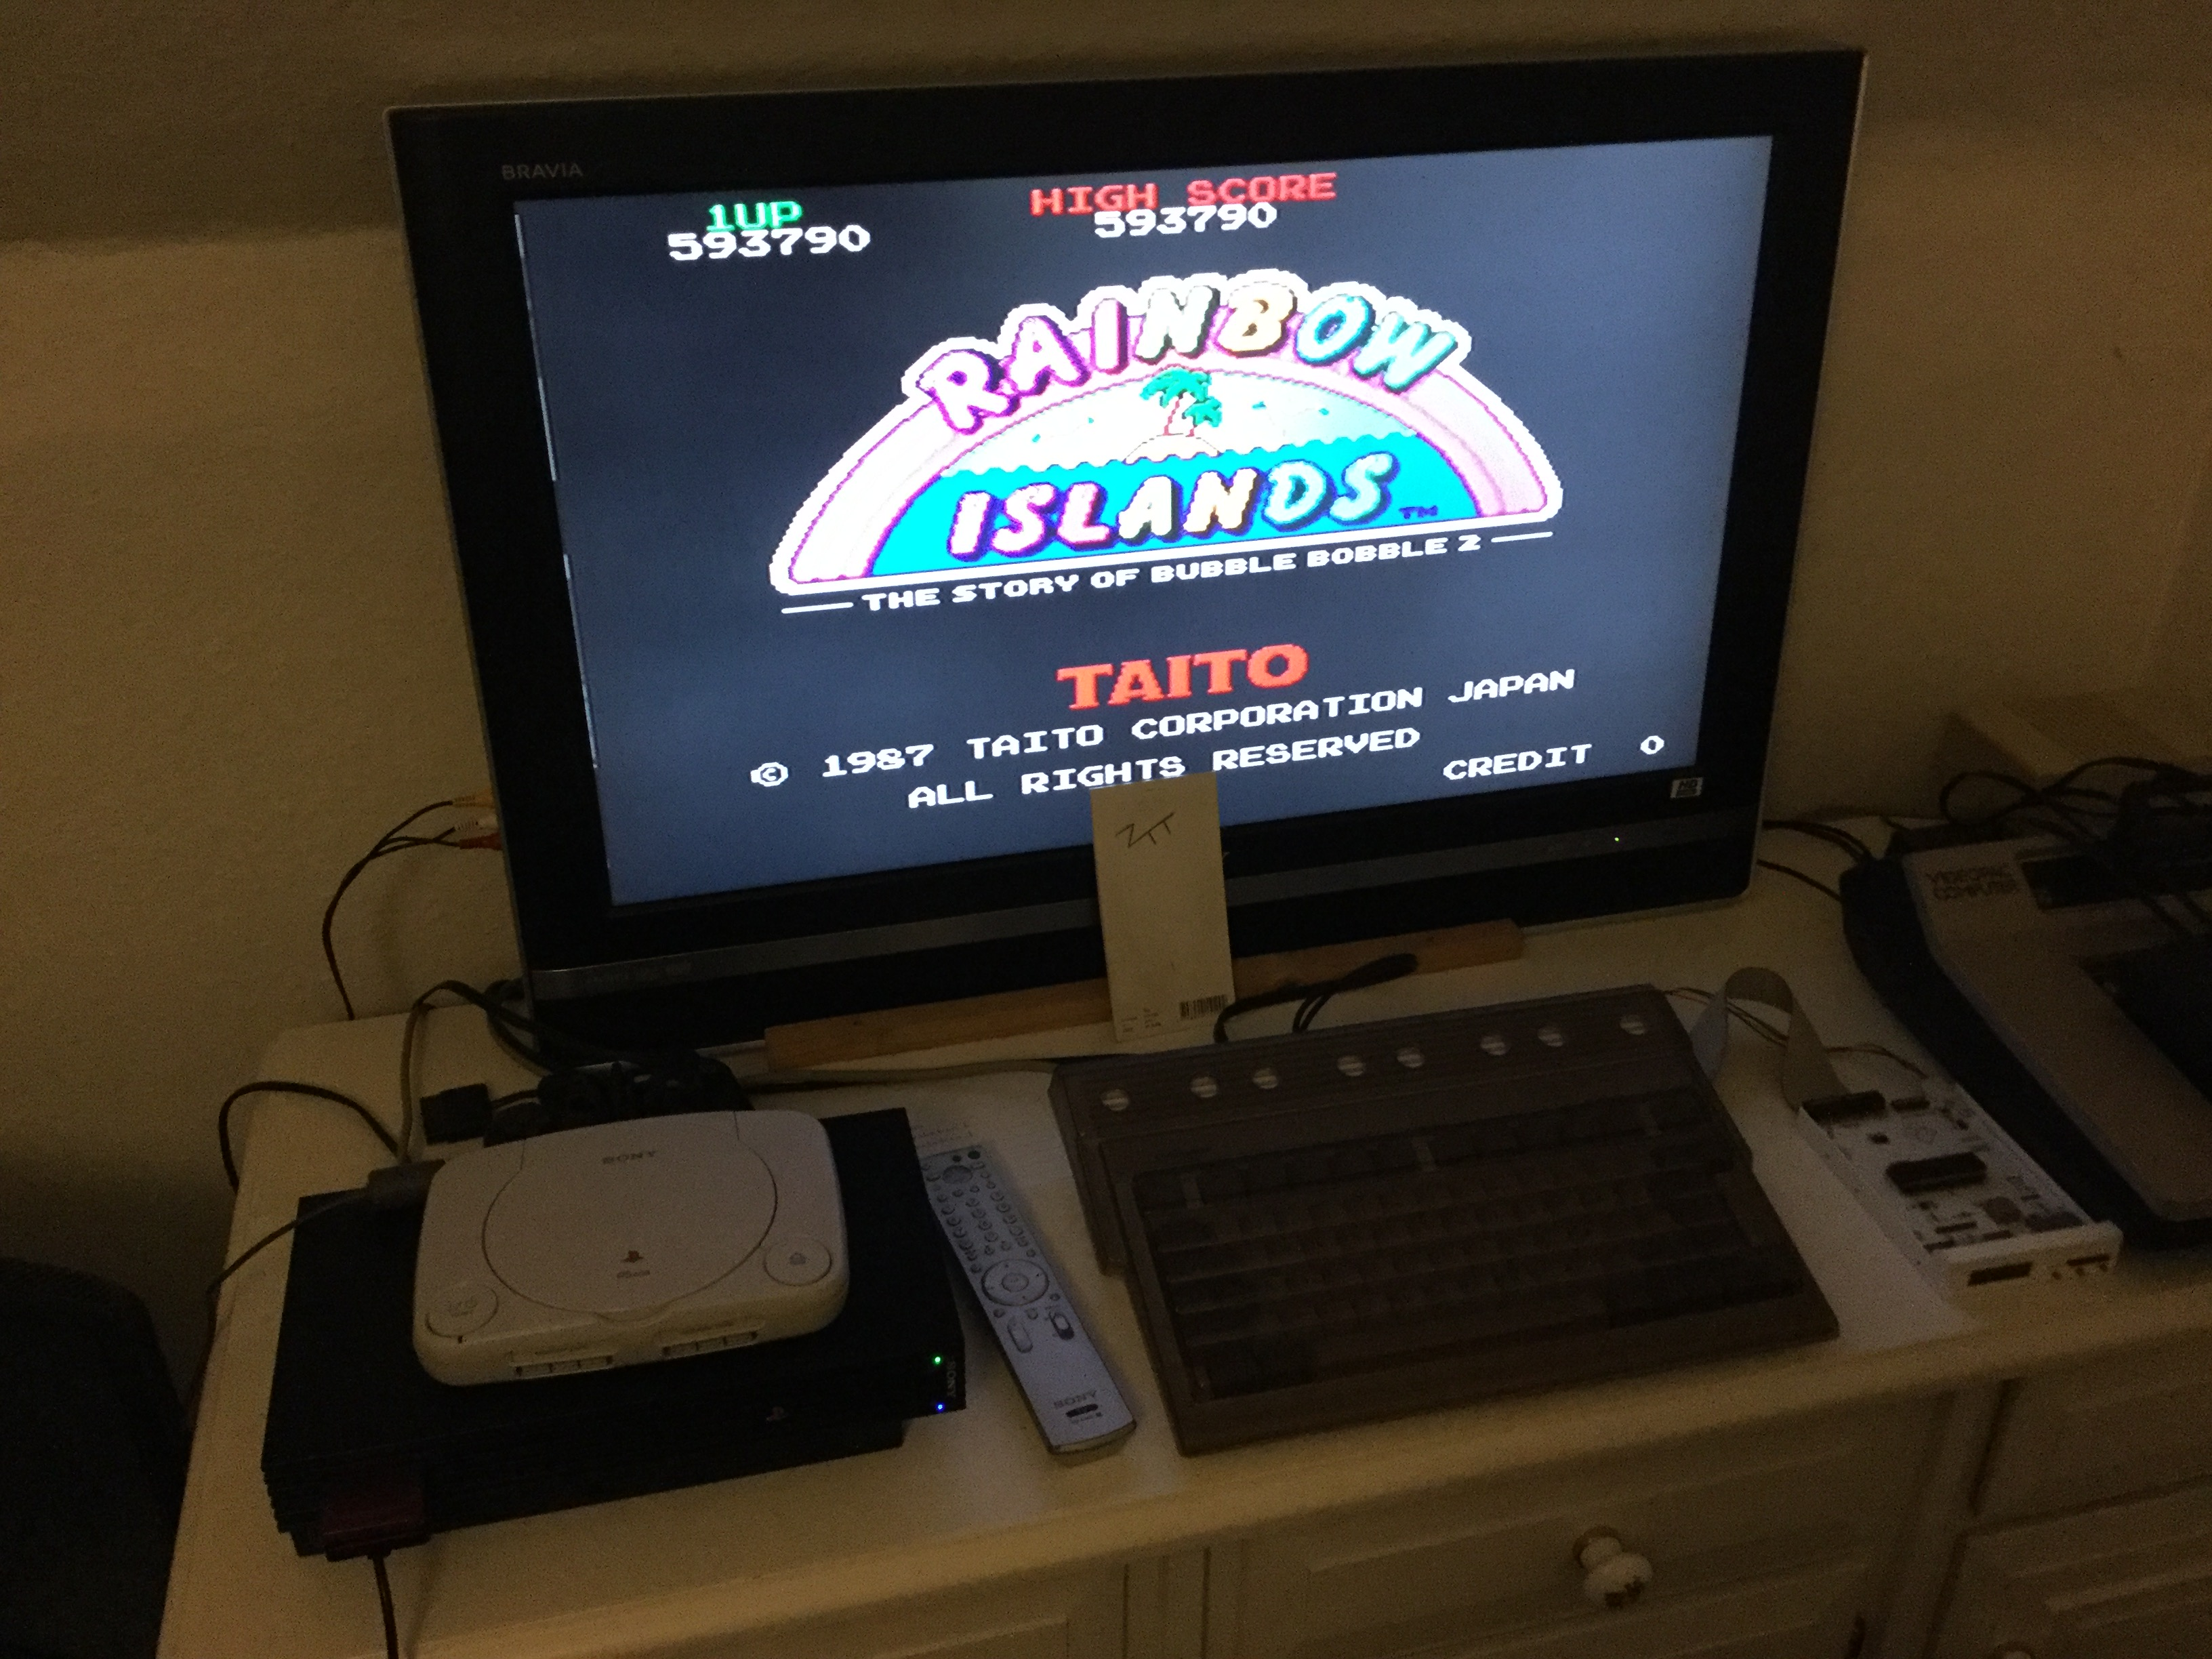 Frankie: Taito Legends: Rainbow Islands [Medium] (Playstation 2) 593,790 points on 2018-03-23 13:33:33